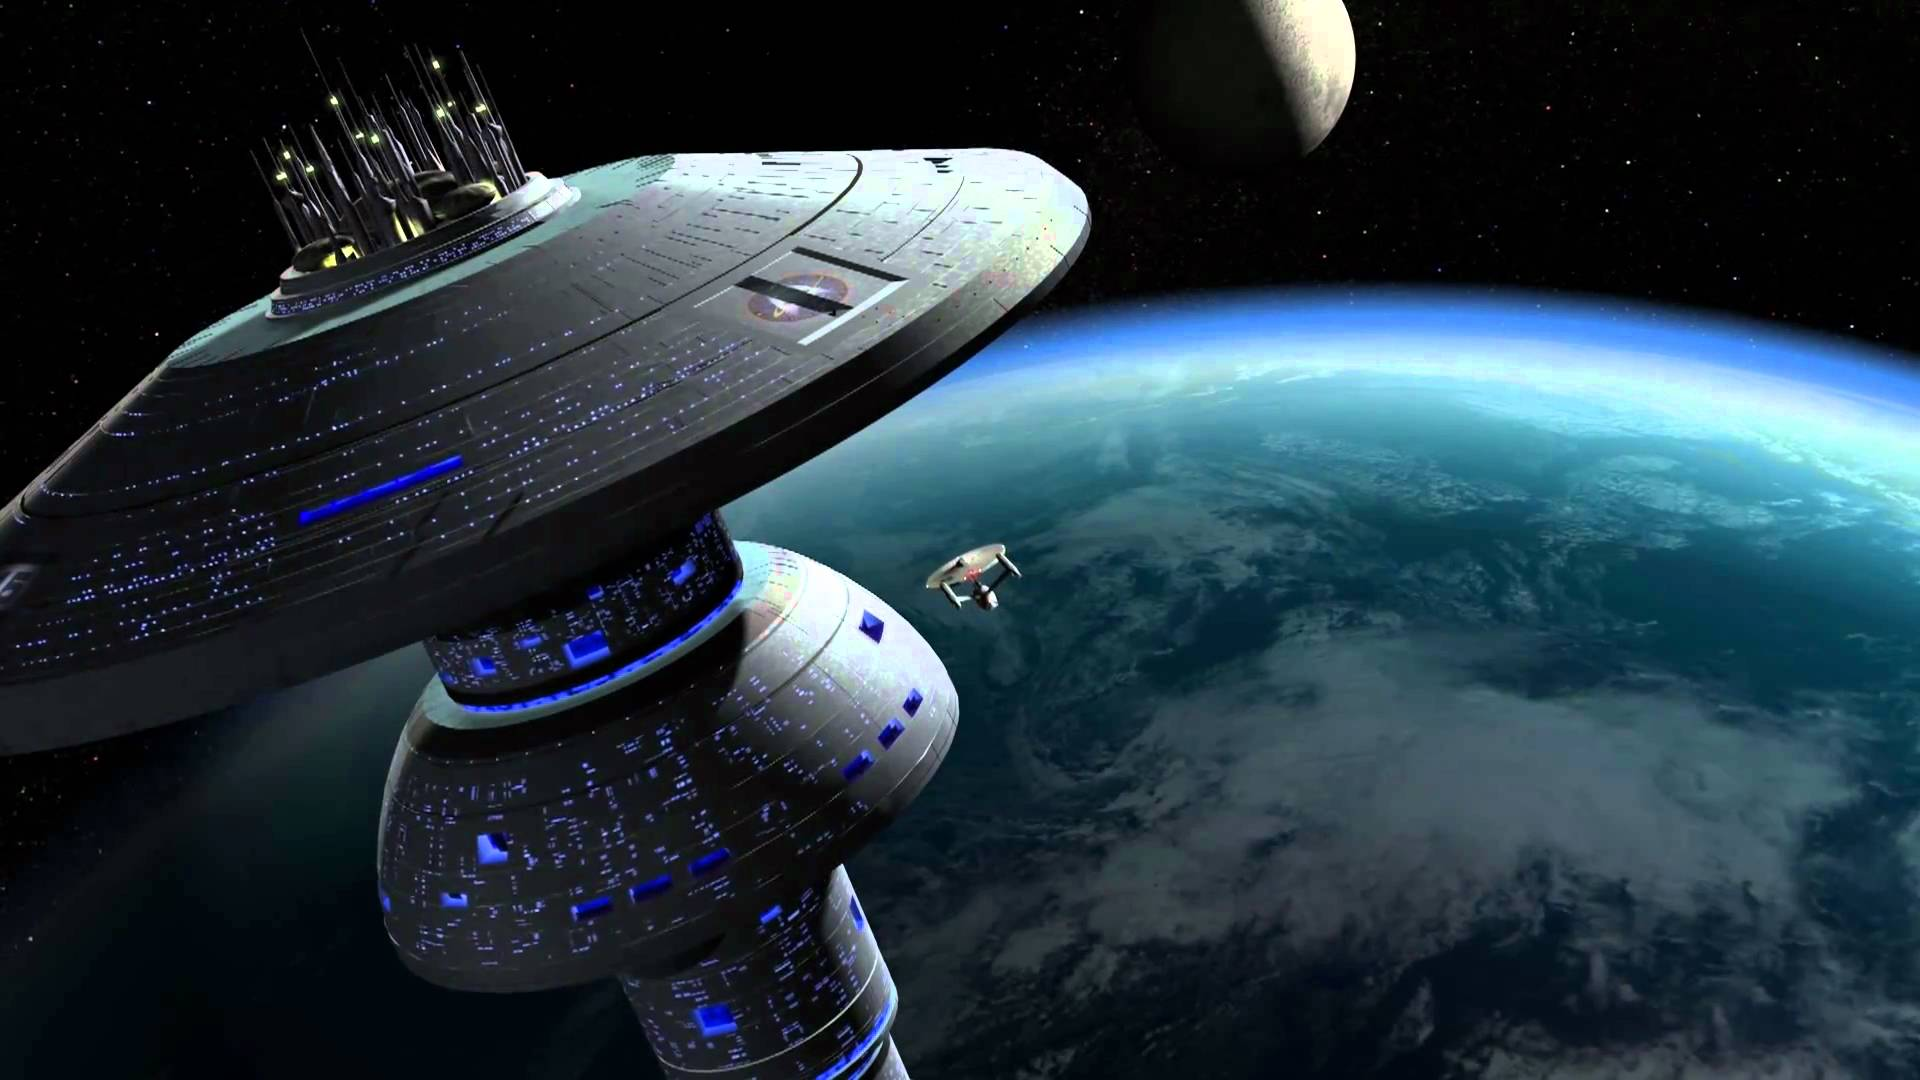 The Enterprise arrives at Spacedock in Star Trek III: The Search for Spock (1984)